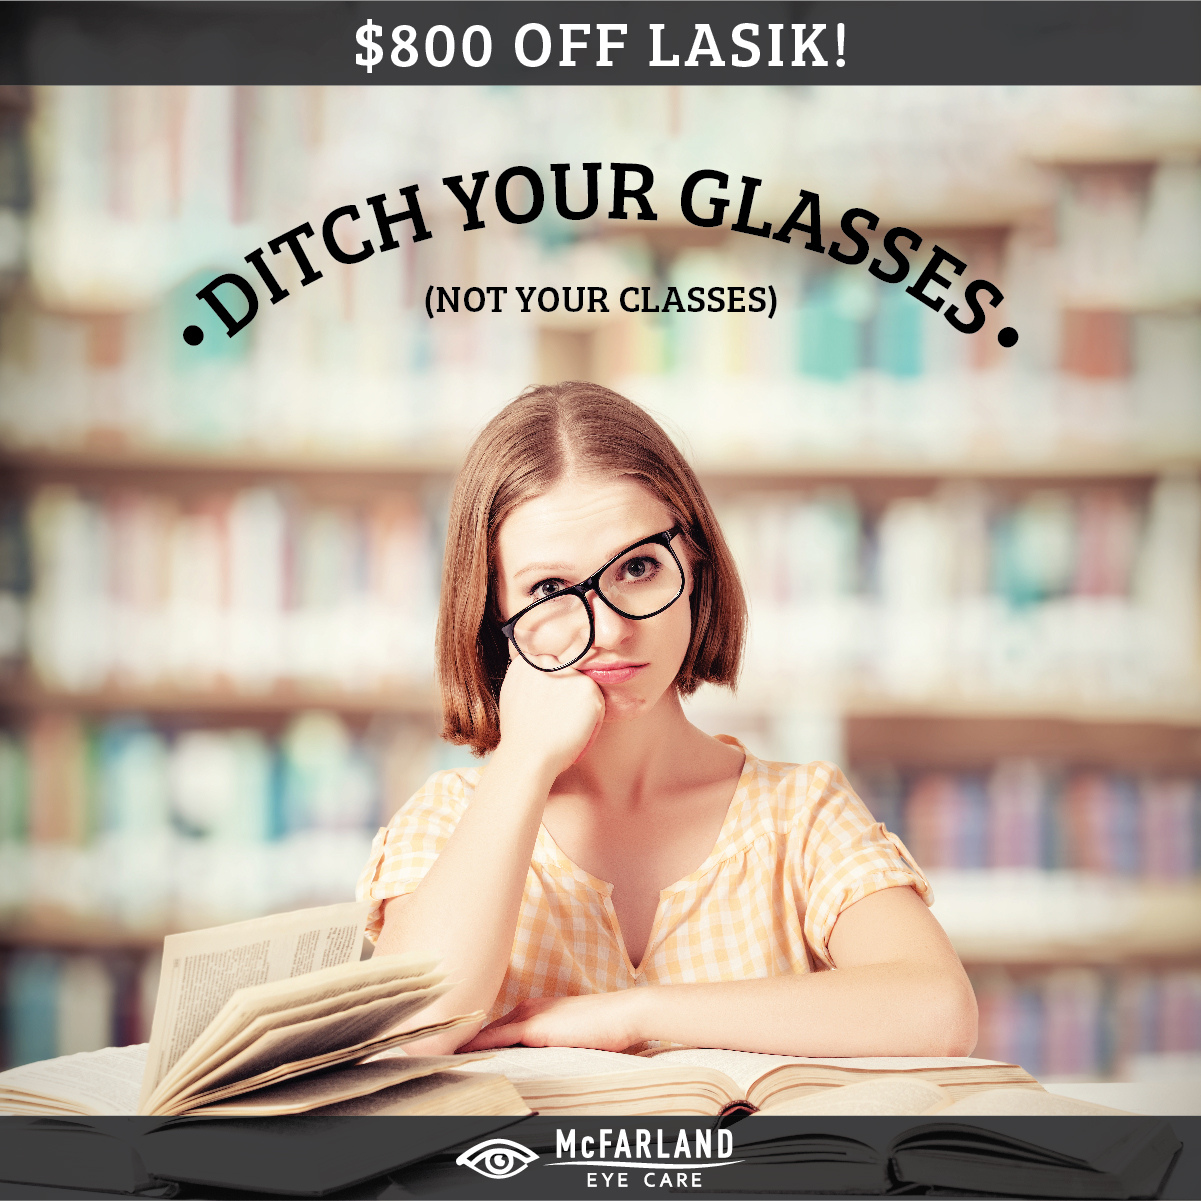 McFarland Eye Care - LASIK Special